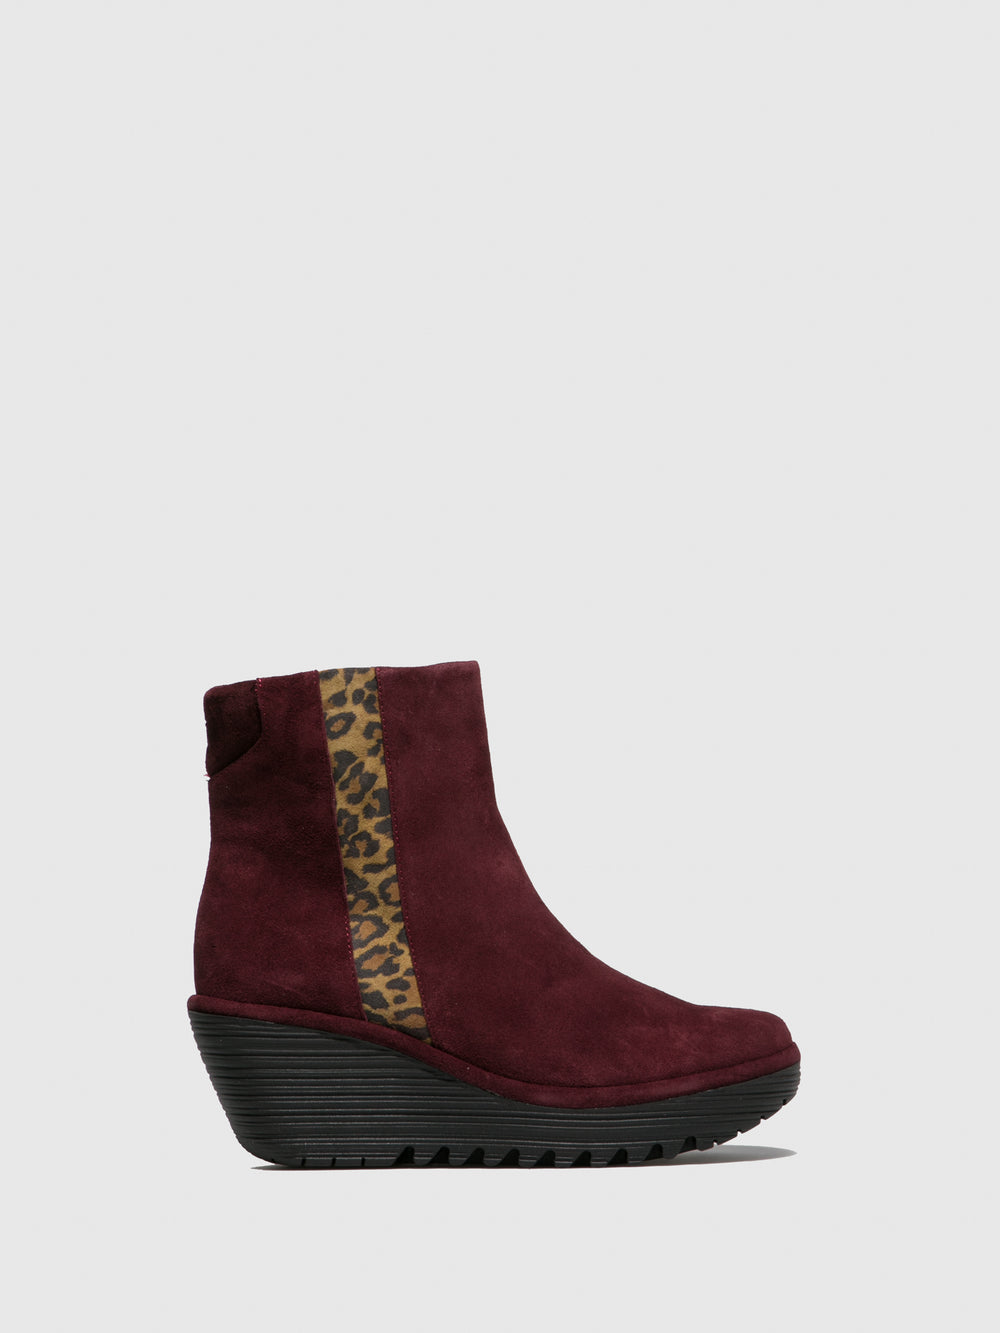 Zip Up Ankle Boots YULU252FLY OILSUEDE/CHEETAH WINE/TAN